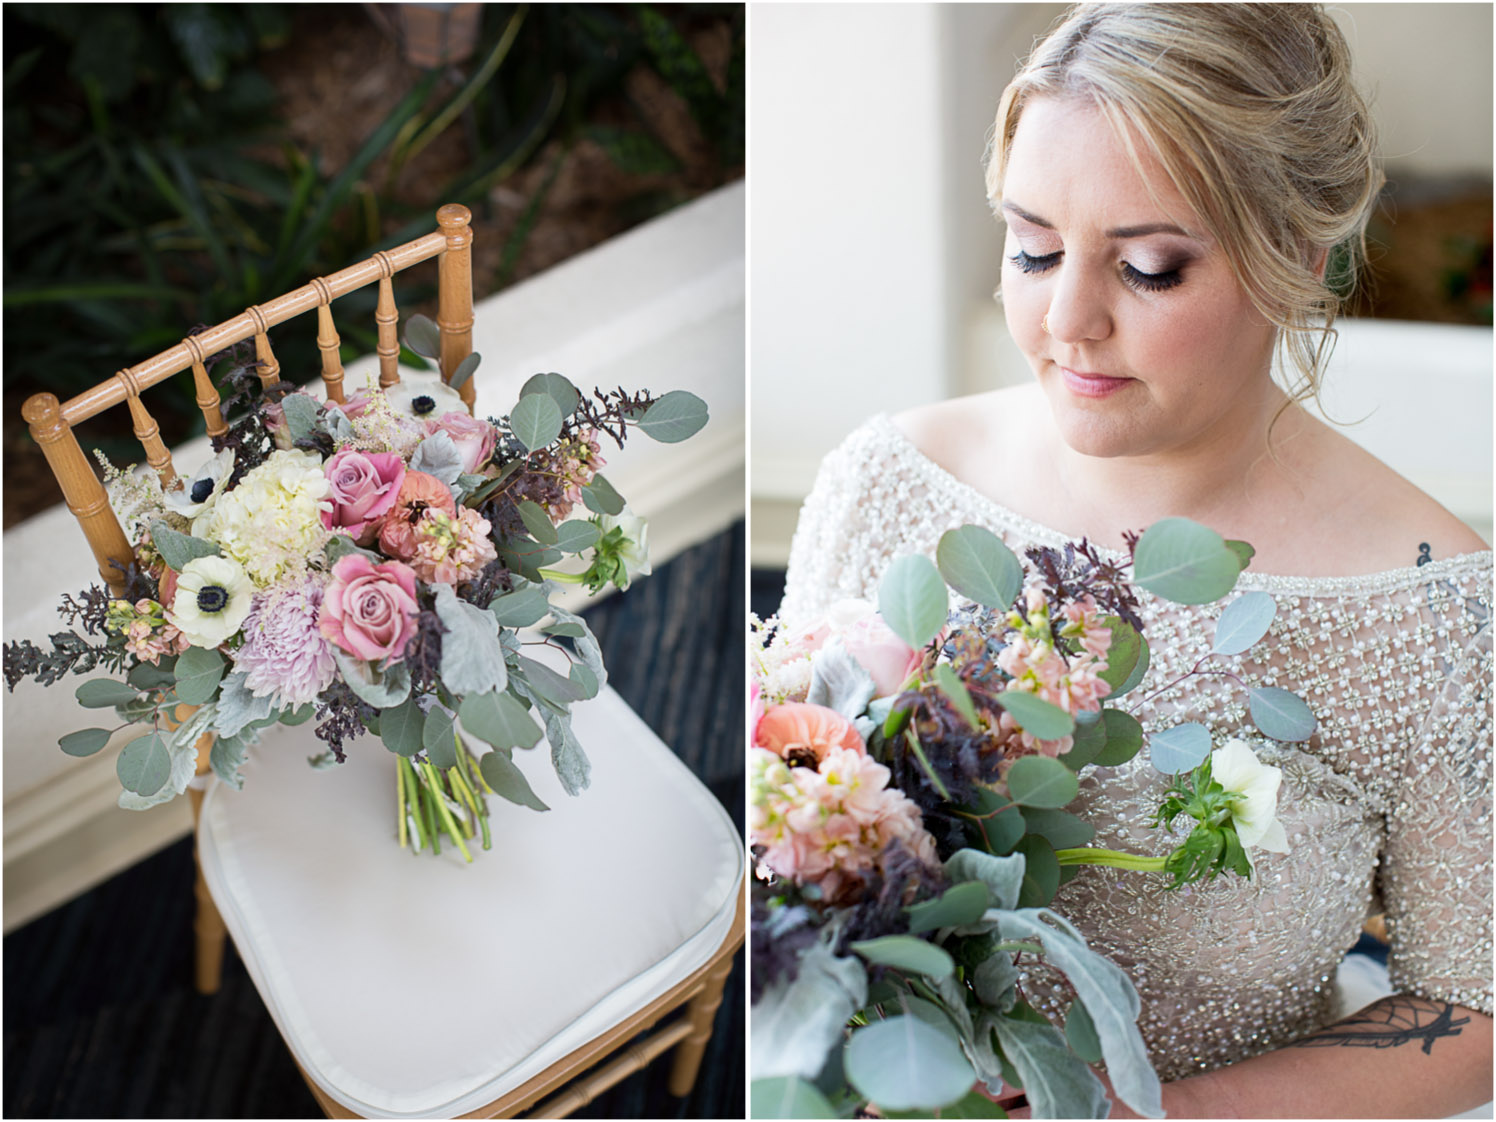 06-double-tree-park-place-weddings-st-louis-park-minneapolis-minnesota-wedding-photographer-styled-shoot-floral-details-bridal-bouquet-pink-roses-white-anenome-greenery-mahonen-photography.jpg